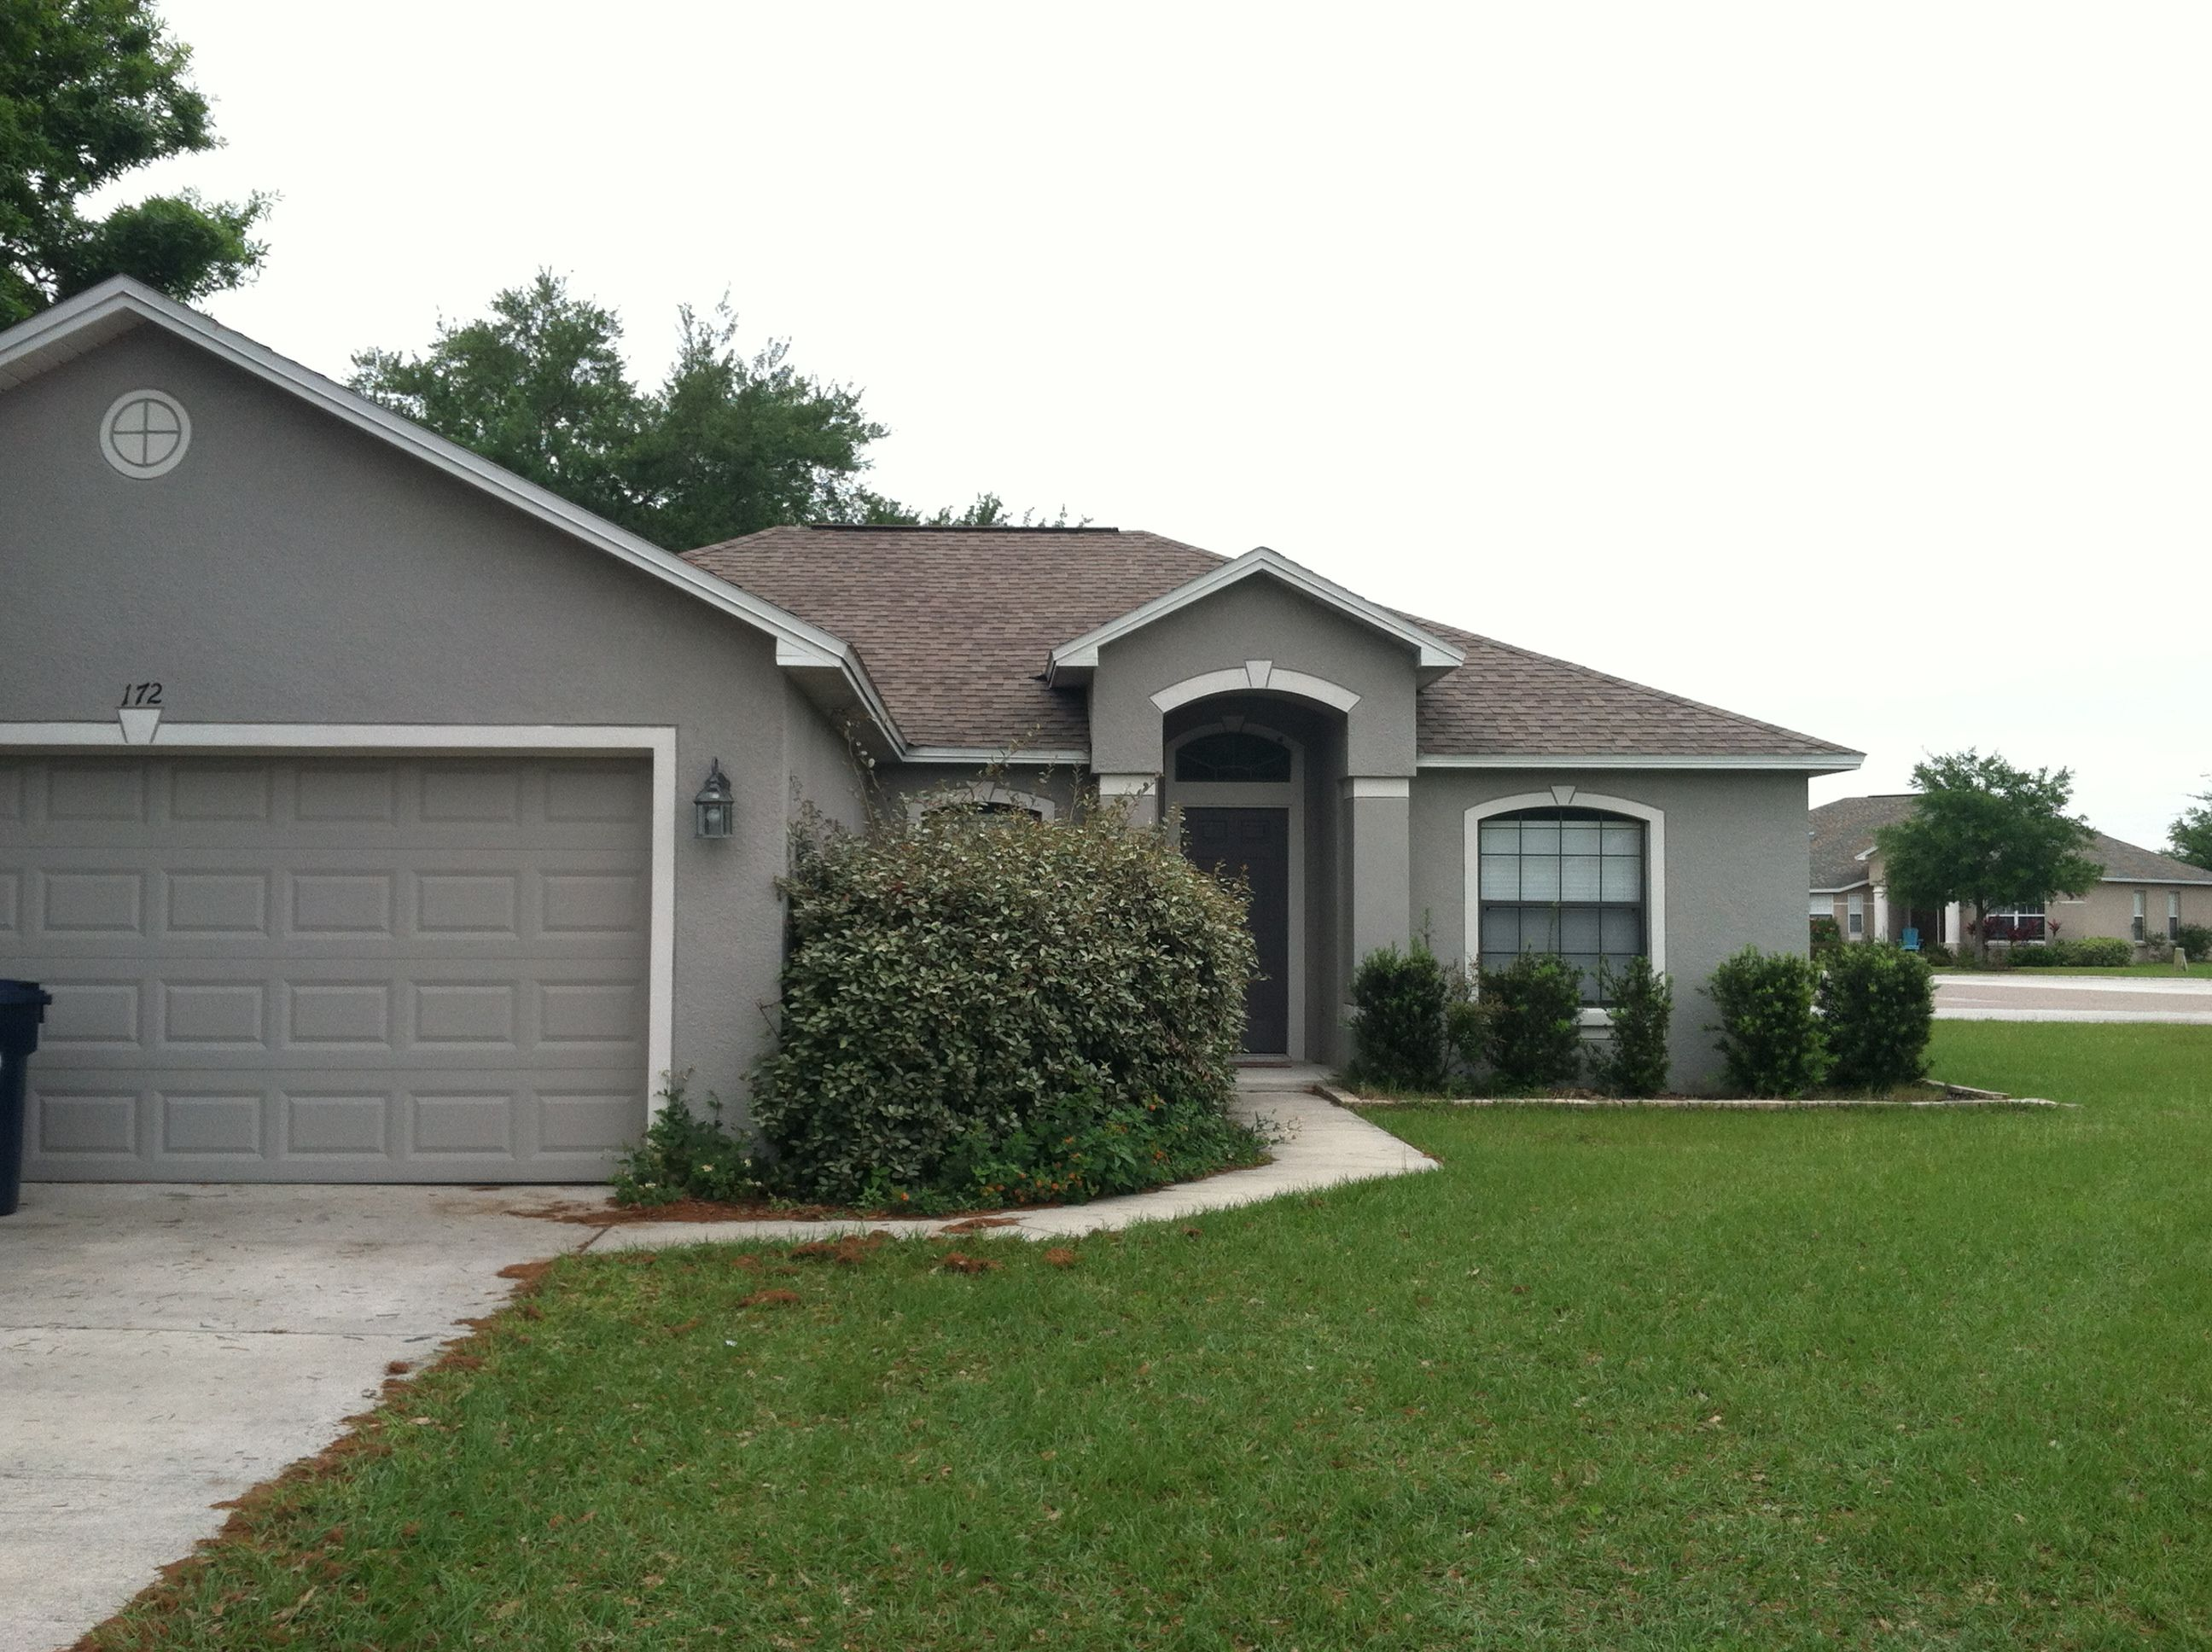 This 3 bedroom 2 bathroom single family home located at 172 oak this 3 bedroom 2 bathroom single family home located at 172 oak crossing in auburndale fl is an upgraded unit with new cabinets hardwood floors and a sciox Images